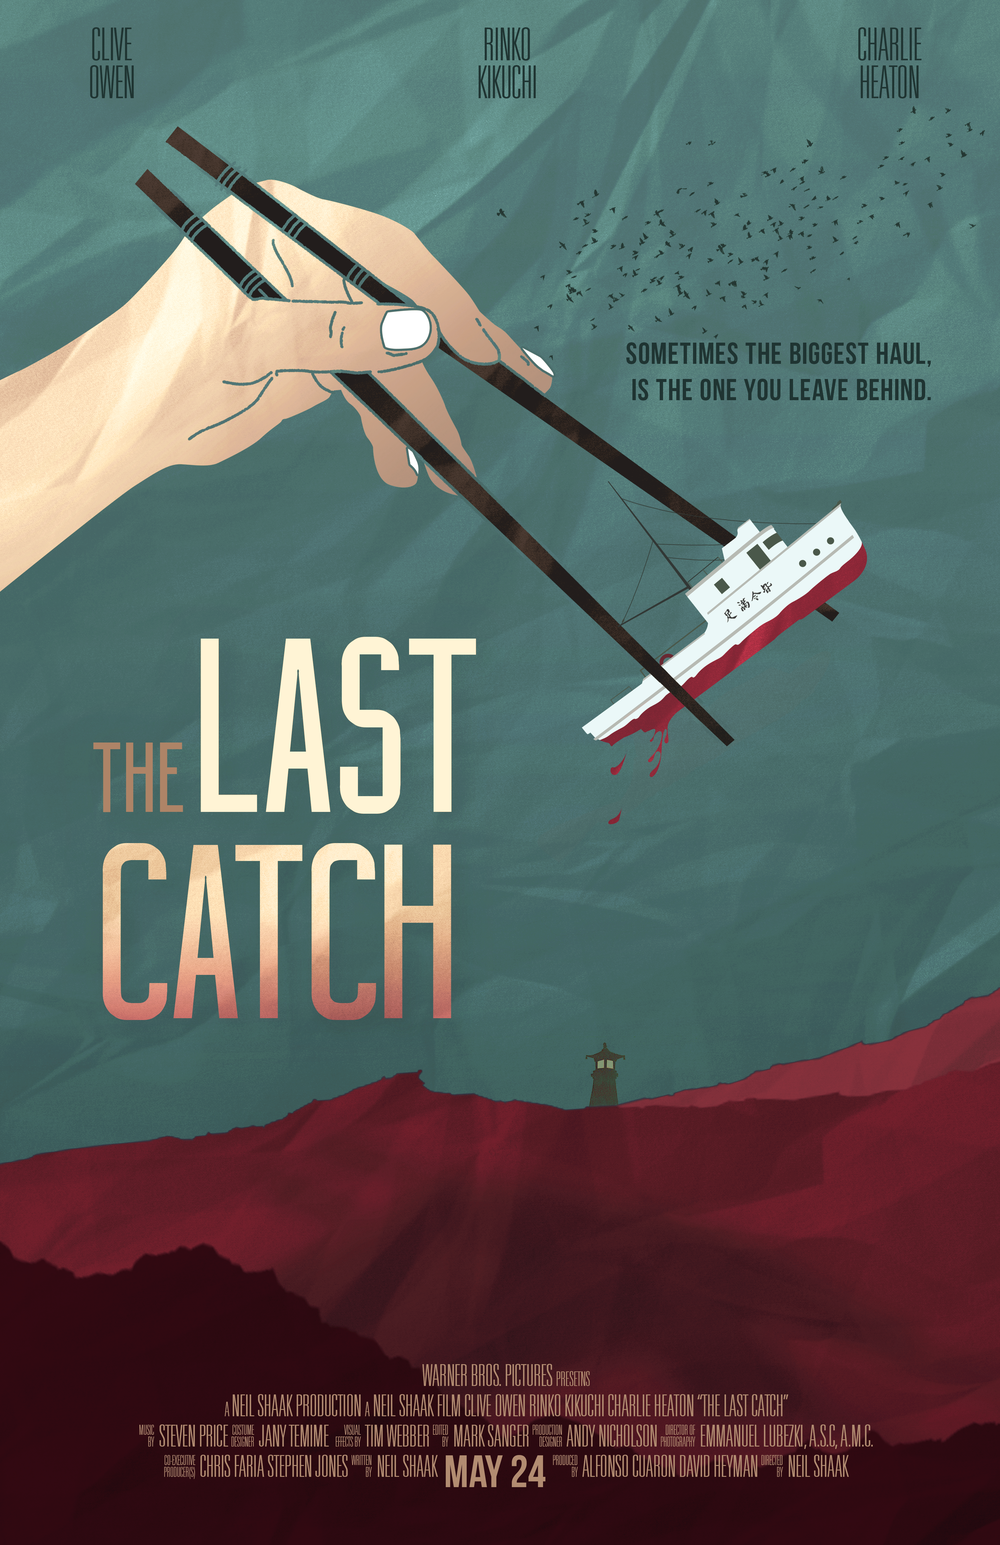 THE LAST CATCH  - FILM CONCEPT & POSTER DESIGN Our oceans are dying. Climate change, pollution, and over fishing have pushed our seas to their brink. To combat the risk of losing what was once the world's greatest resource, several countries have joined together to form WARF. The World Alliance for the Restoration of Fisheries. This group, which is well funded and heavily armed, rule the seas with an iron fist to strictly enforce a world-wide ban on commercial fishing. After successfully keeping fish off the plates and out of the mouths of the masses for 15 years, legislation has been passed to allow commercial fishers to fish the seas once again. With the expected price of certain species to be worth several times their weight in gold, the chance of landing a large fortune is too alluring for certain elements to pass up. When a majority of the crews are backed by criminal organizations, the fishermen know what's at stake and are willing to do whatever it takes to satisfy their financial backers and make this next catch the last they'll ever need.